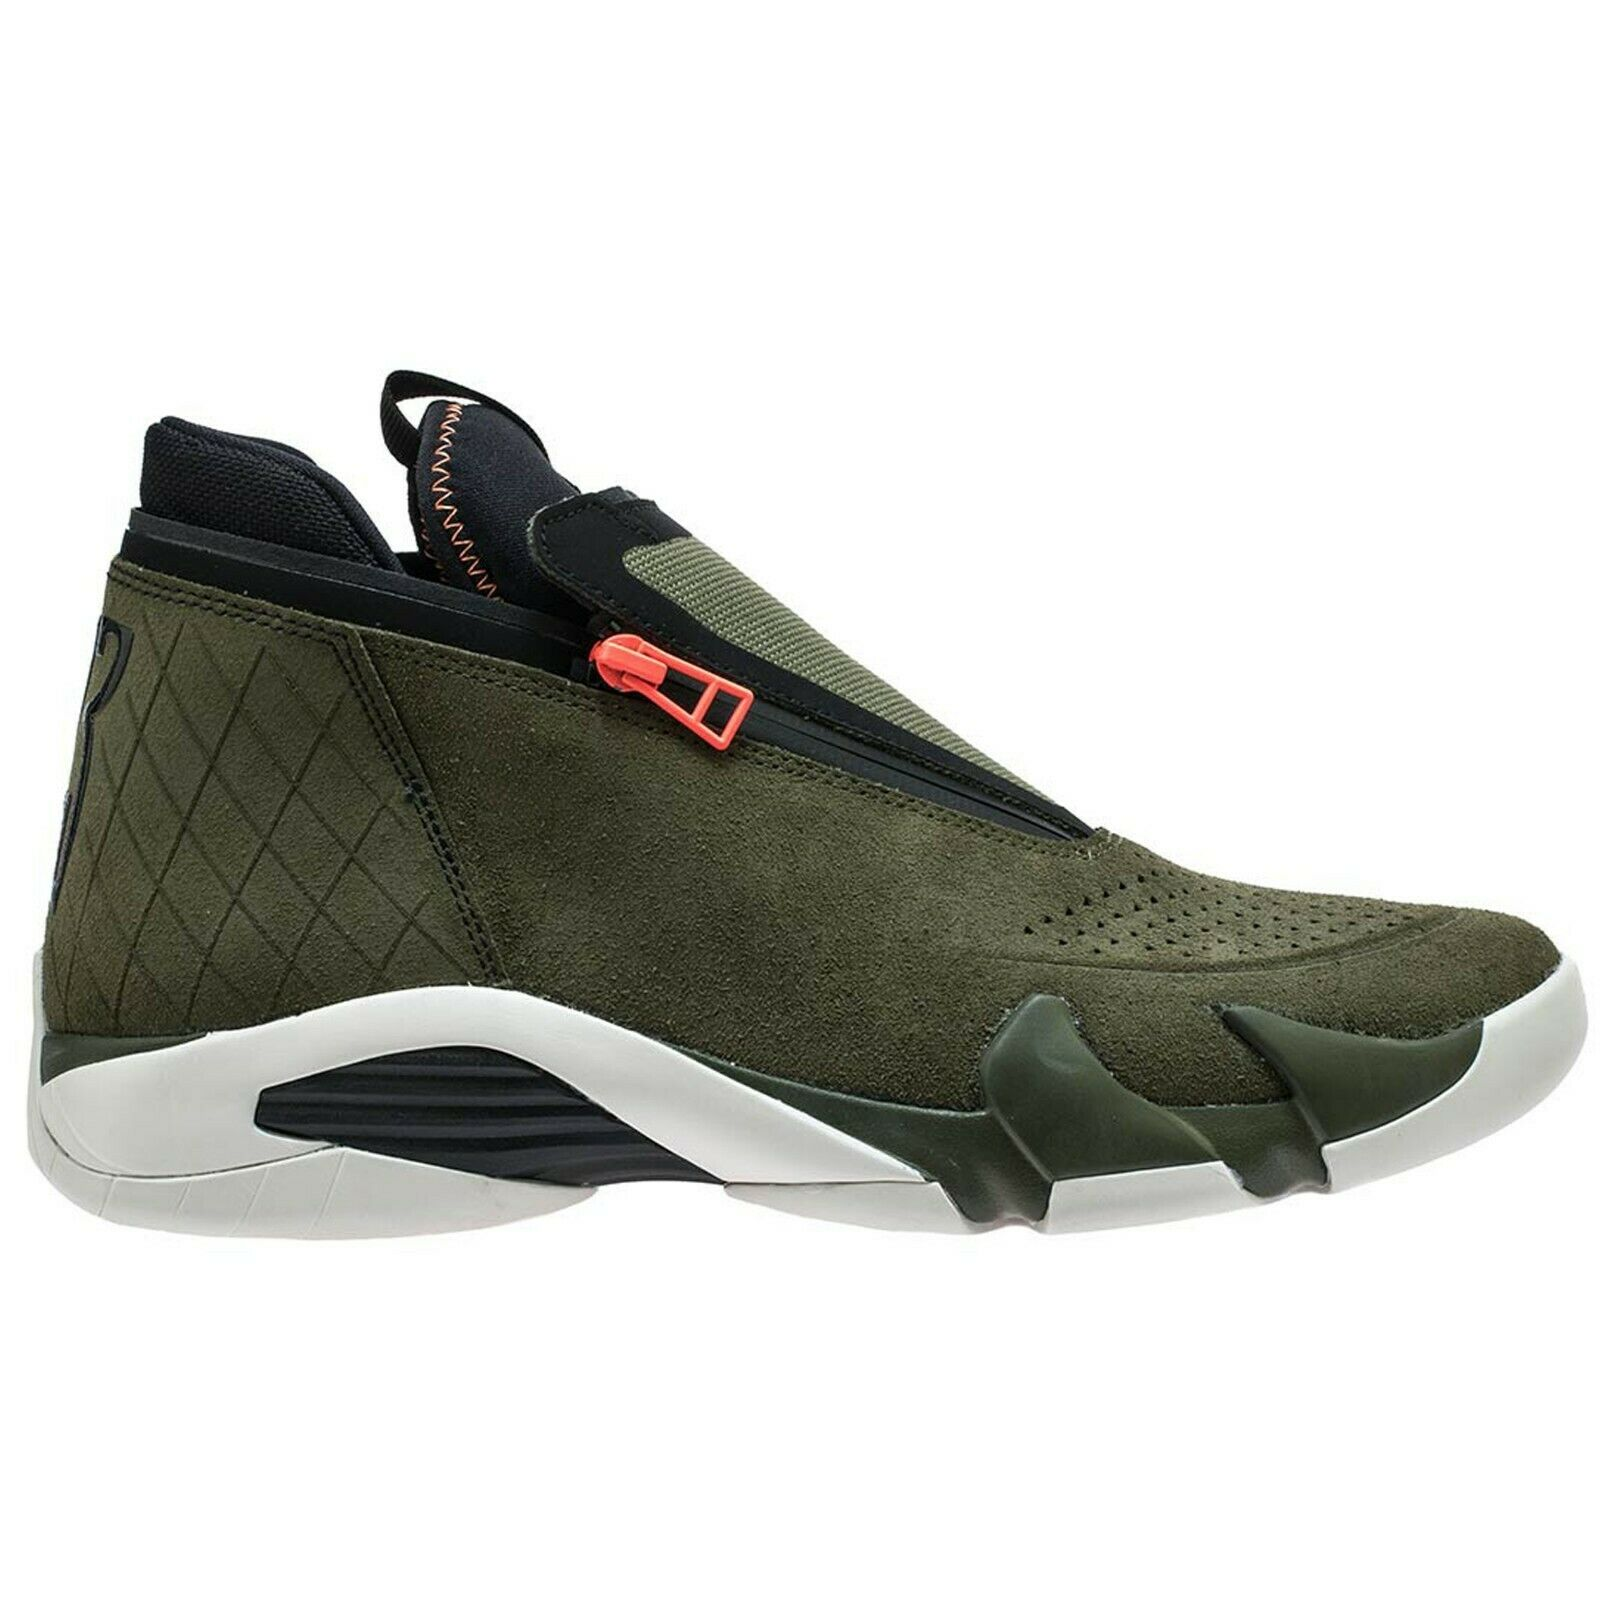 Air Jordan Jumpman Z Zip XIV Olive Grün Canvas Cone AQ9119-300 sz 8 New retro